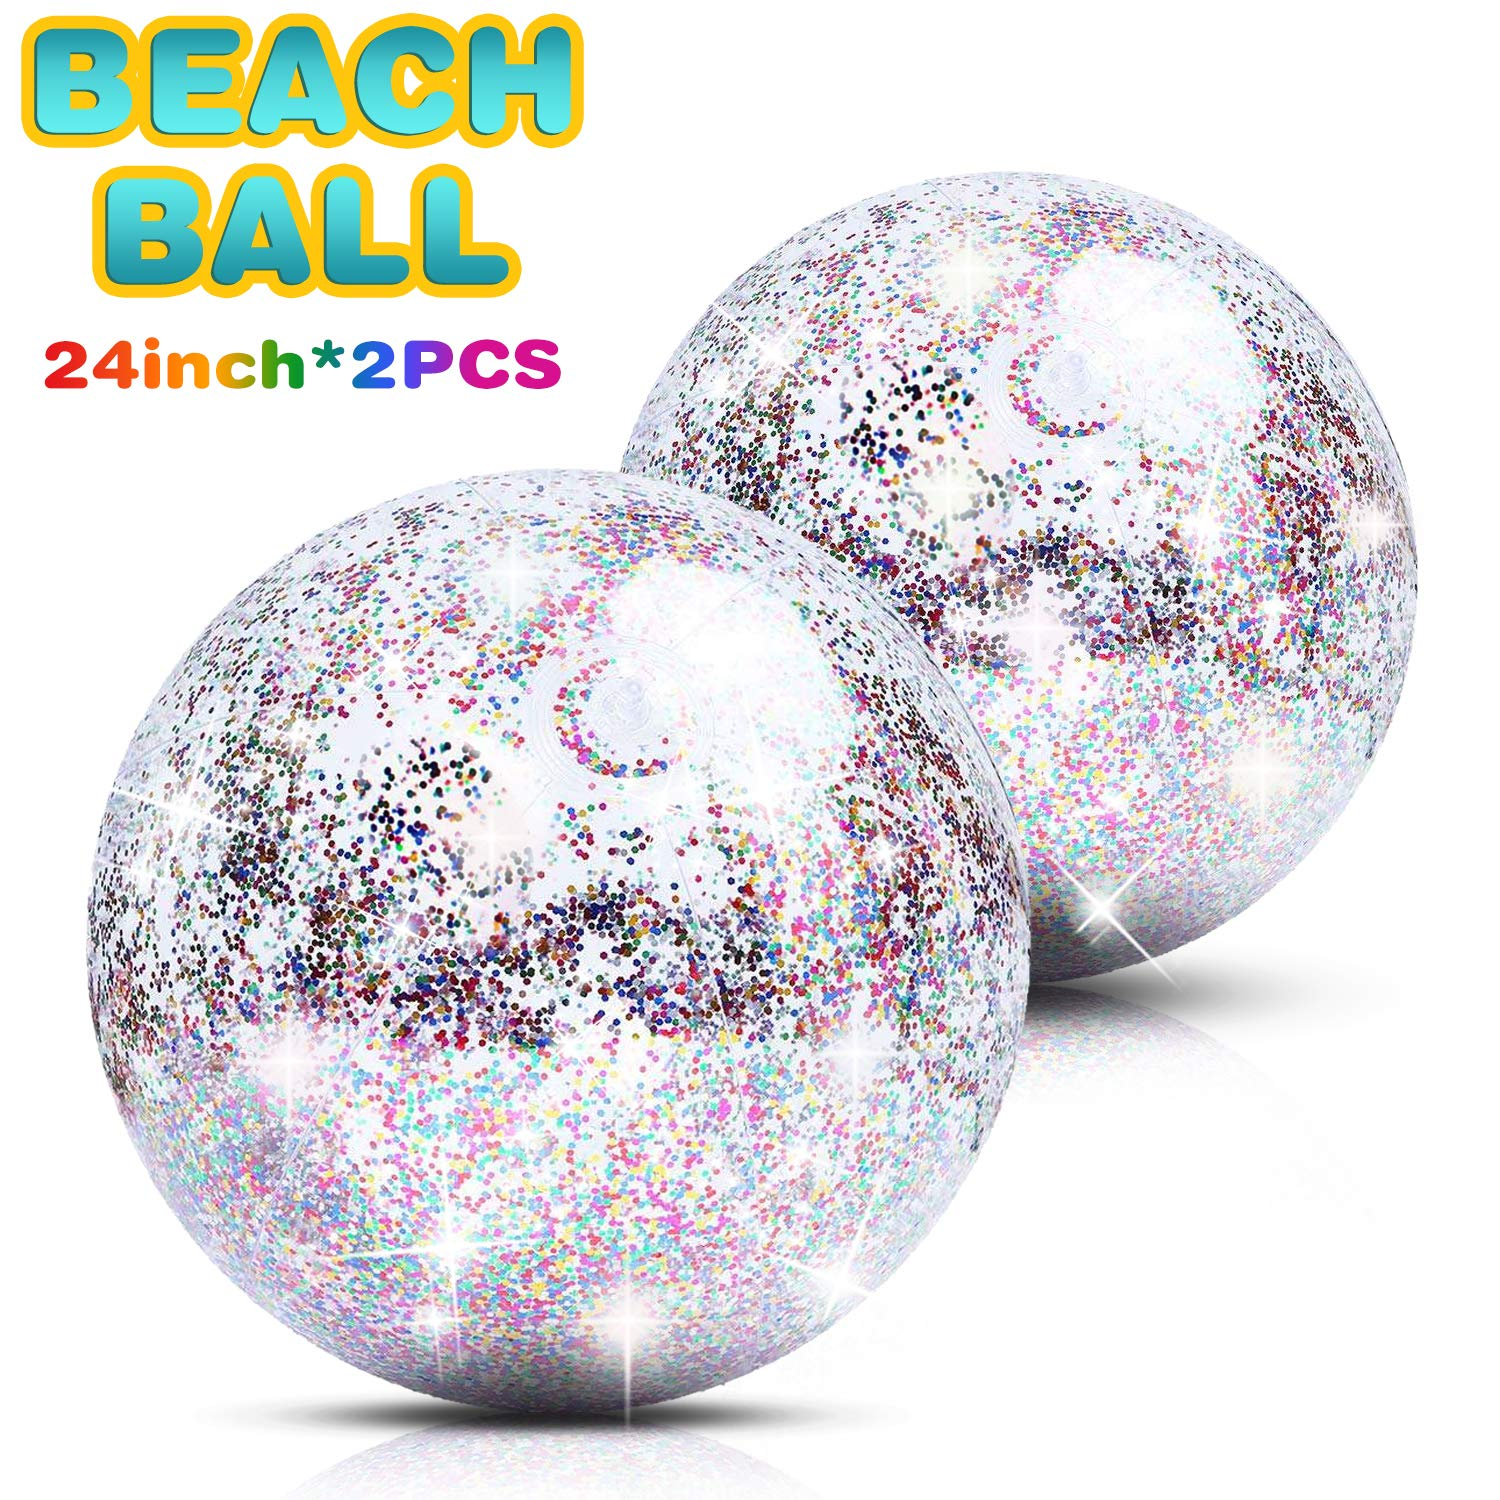 ,24 inch Jumbo Confetti Beach Ball Gold Inflatable Sequin Giant Party Ball Pool Water Toy for Kids Adults Summer Beach LcLand Glitter Beach Ball 2 Pack